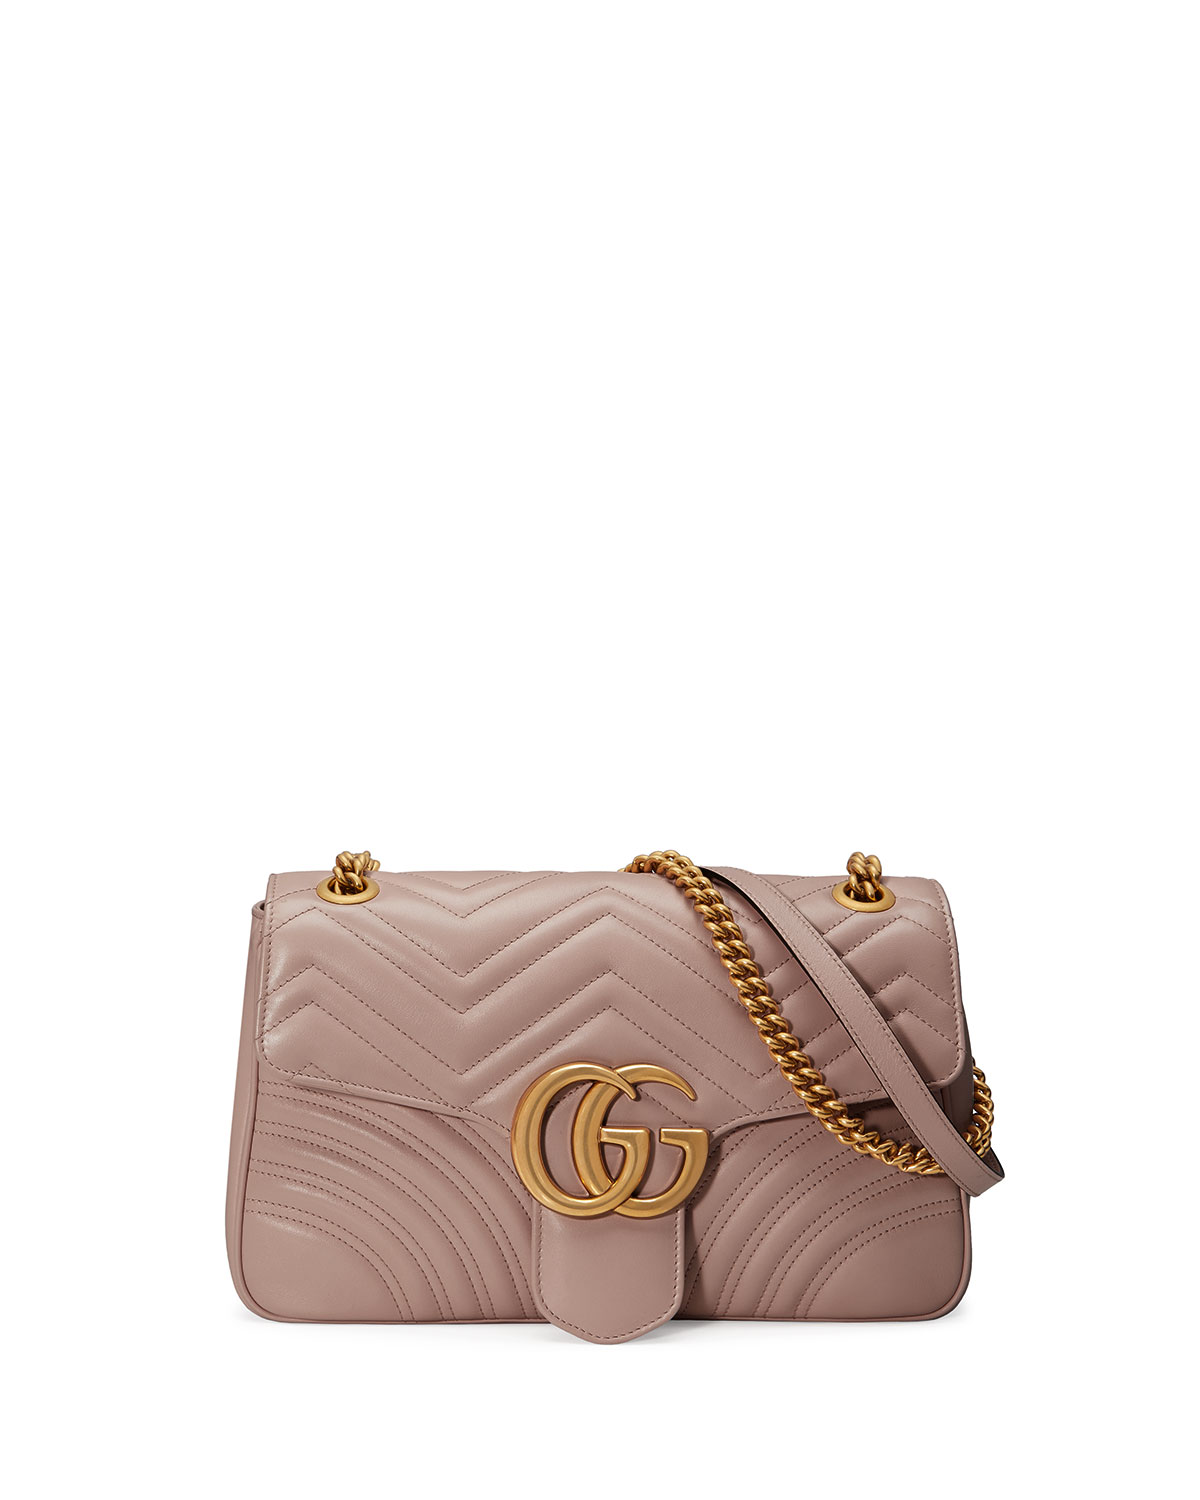 3e6e382b4 Gucci GG Marmont Medium Leather Shoulder Bag | Neiman Marcus